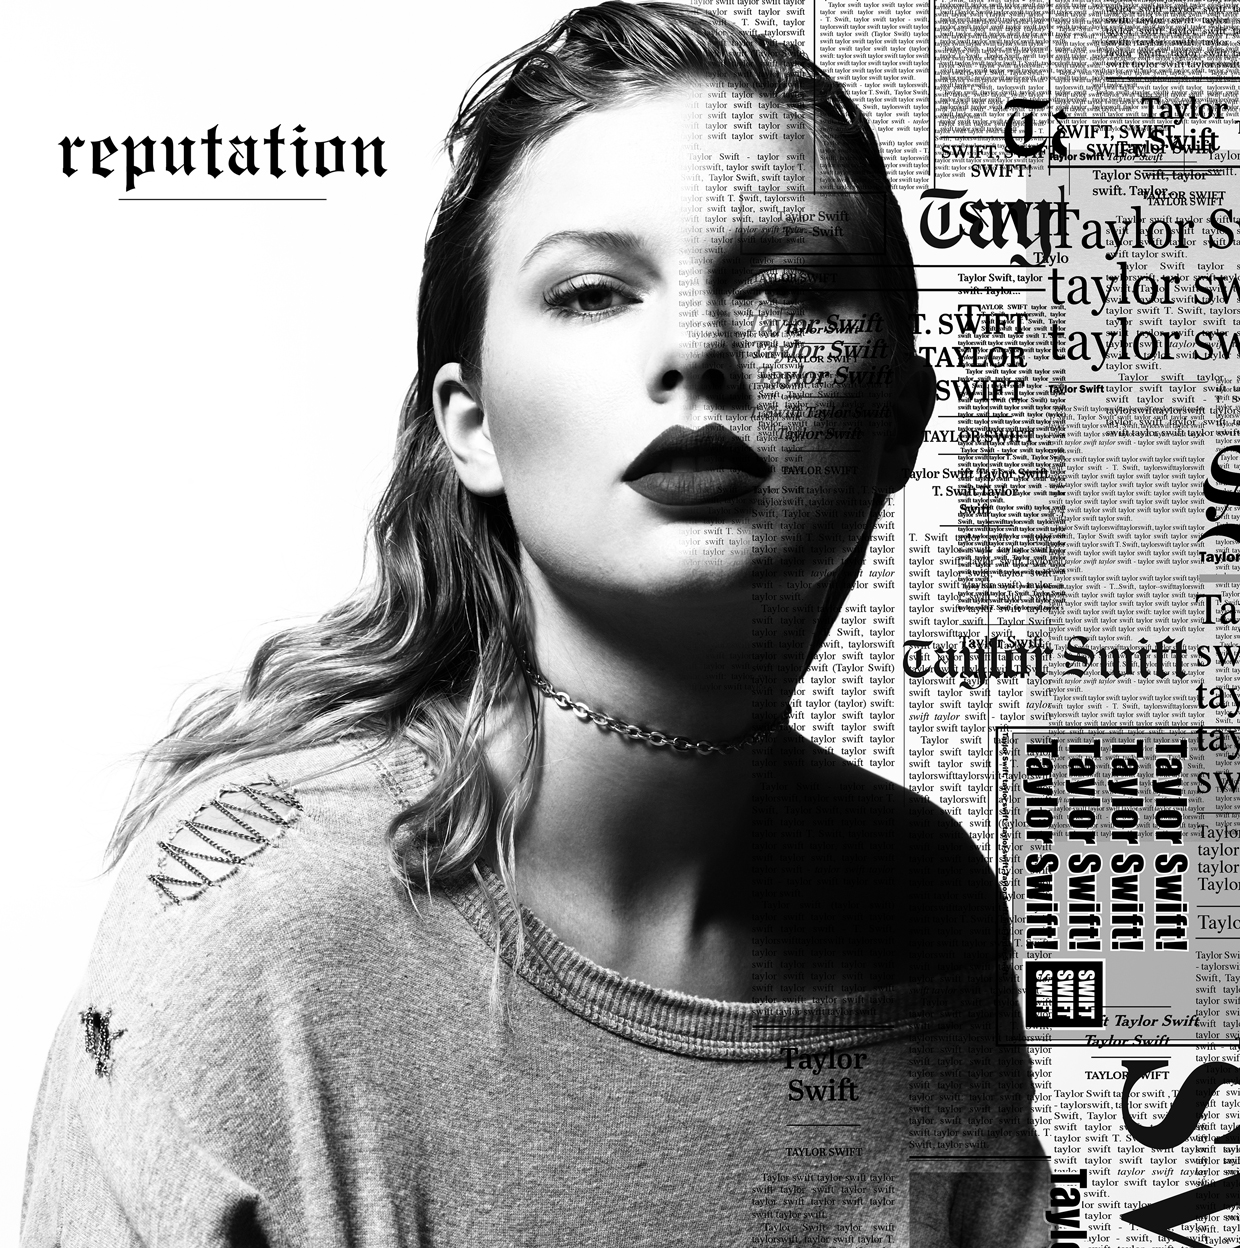 Taylor-Swift-reputation-ART-2017-billboard-1240